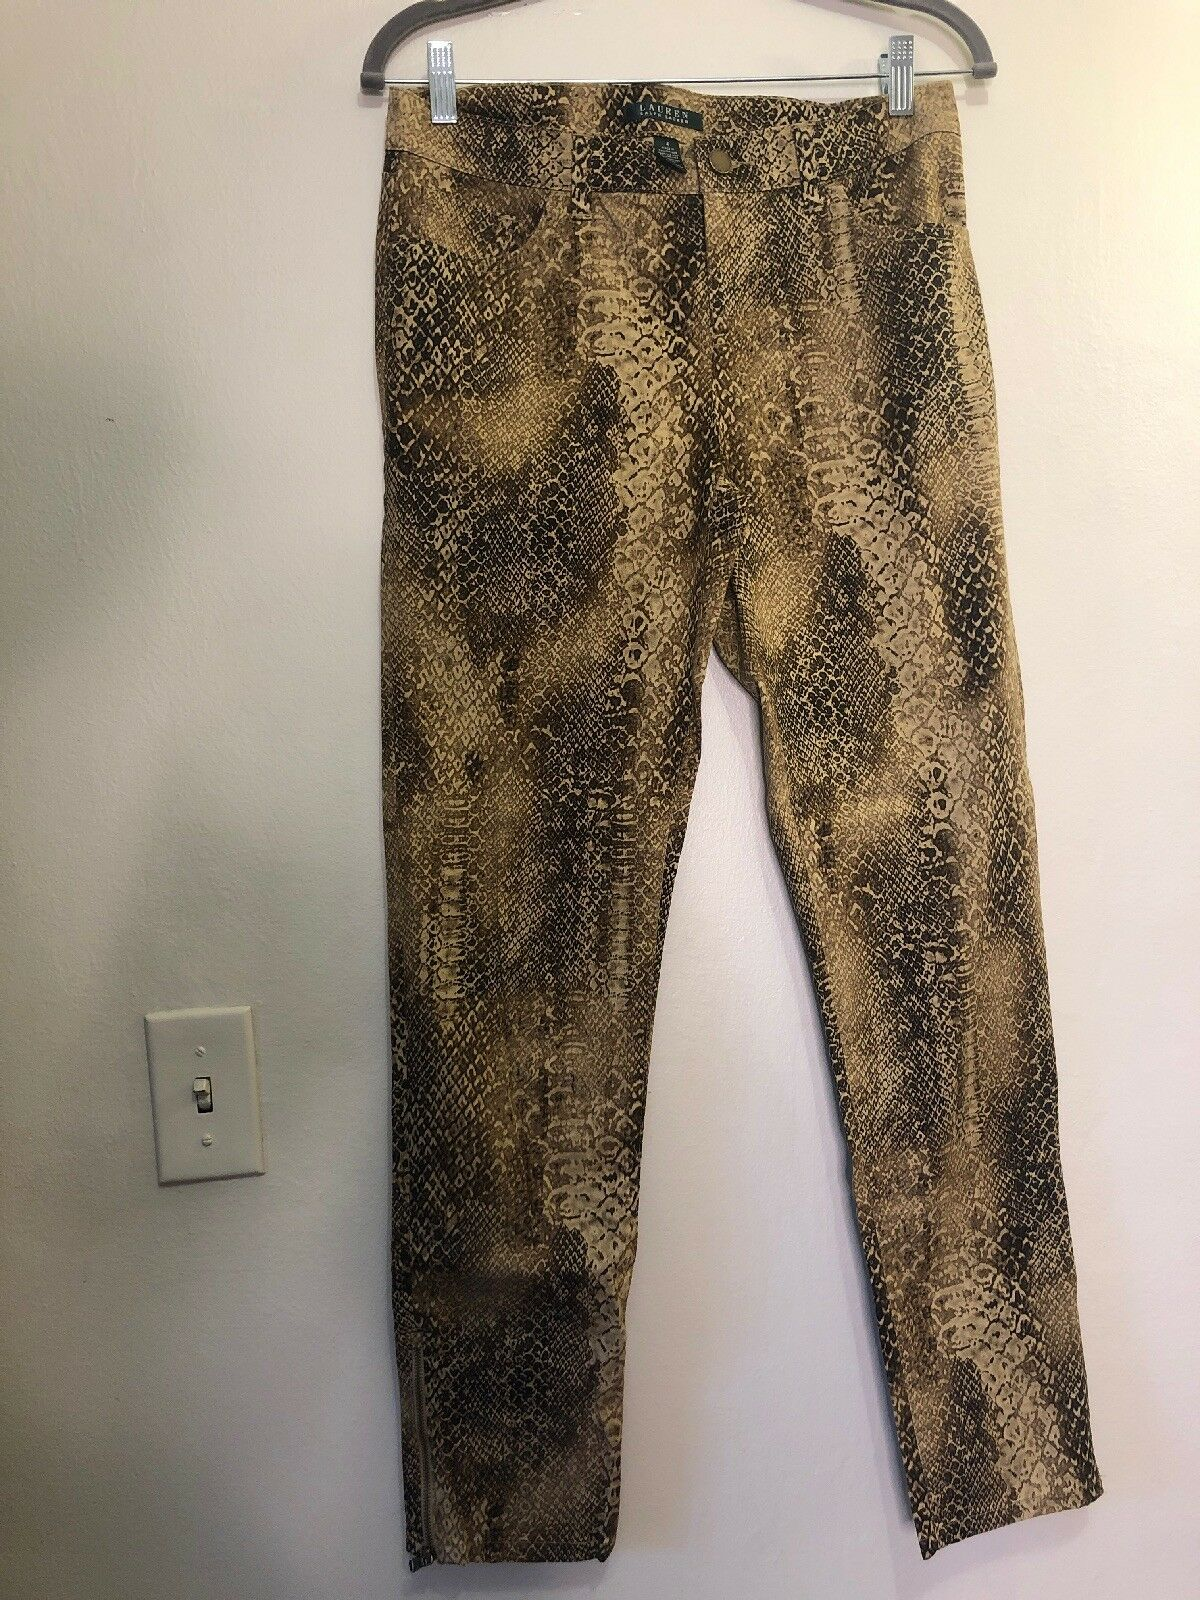 Polo ralph lauren Womens Size 4 Snake Skin Pattern Zip Up Leg